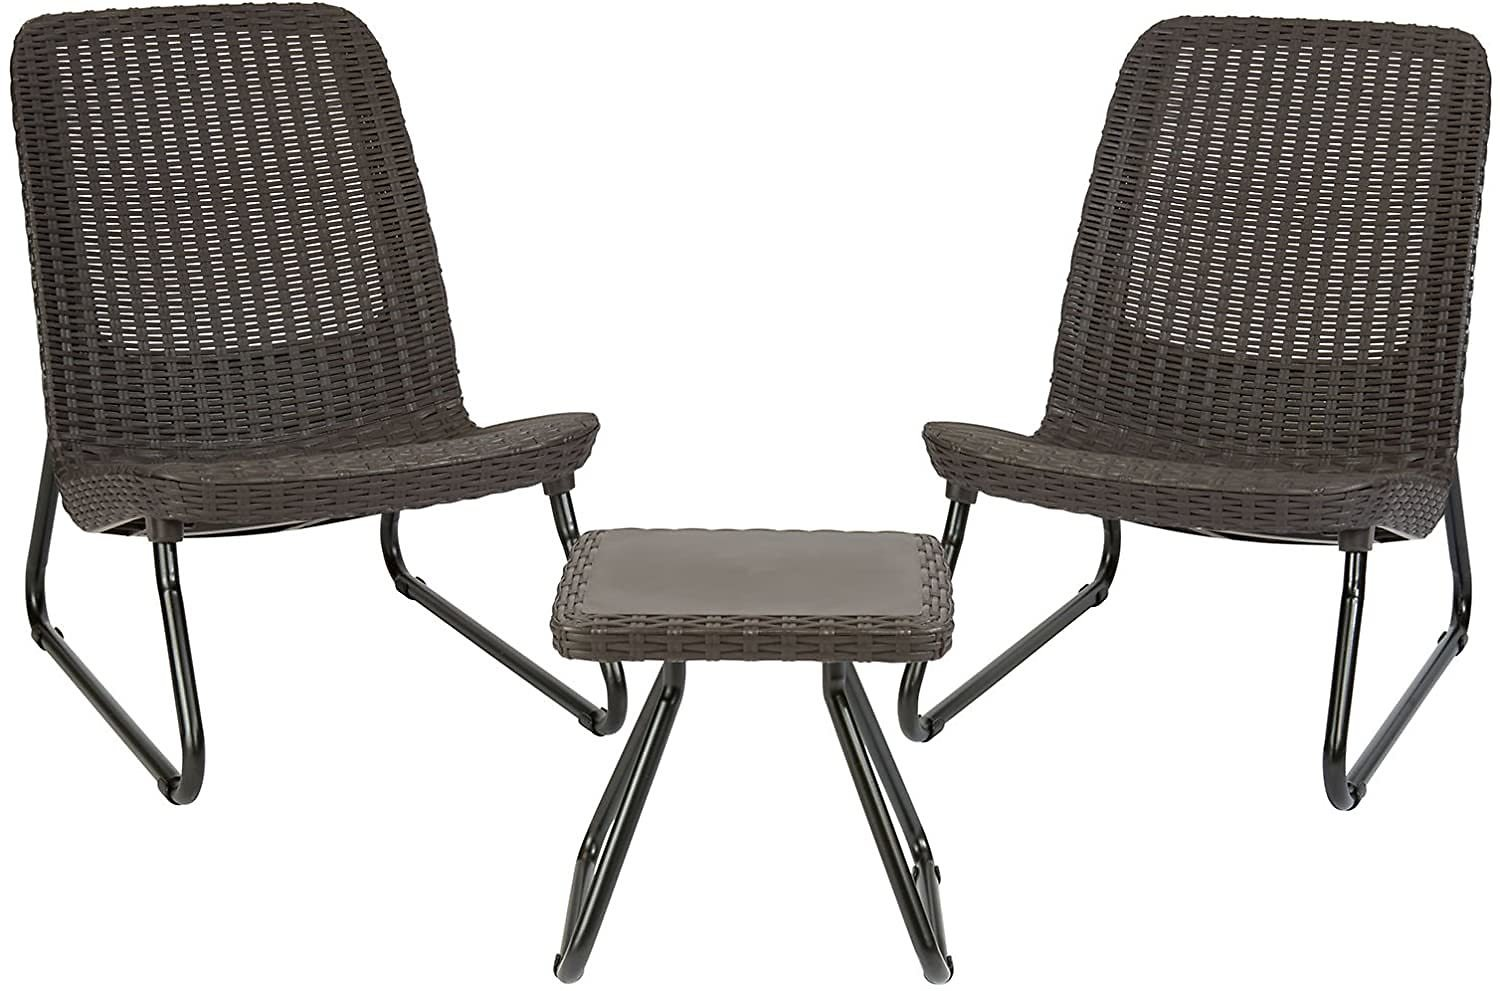 Save 8% | Keter Rio 3 Pcs All Weather Outdoor Patio Garden Conversation Chair & Table Set Furniture, Brown